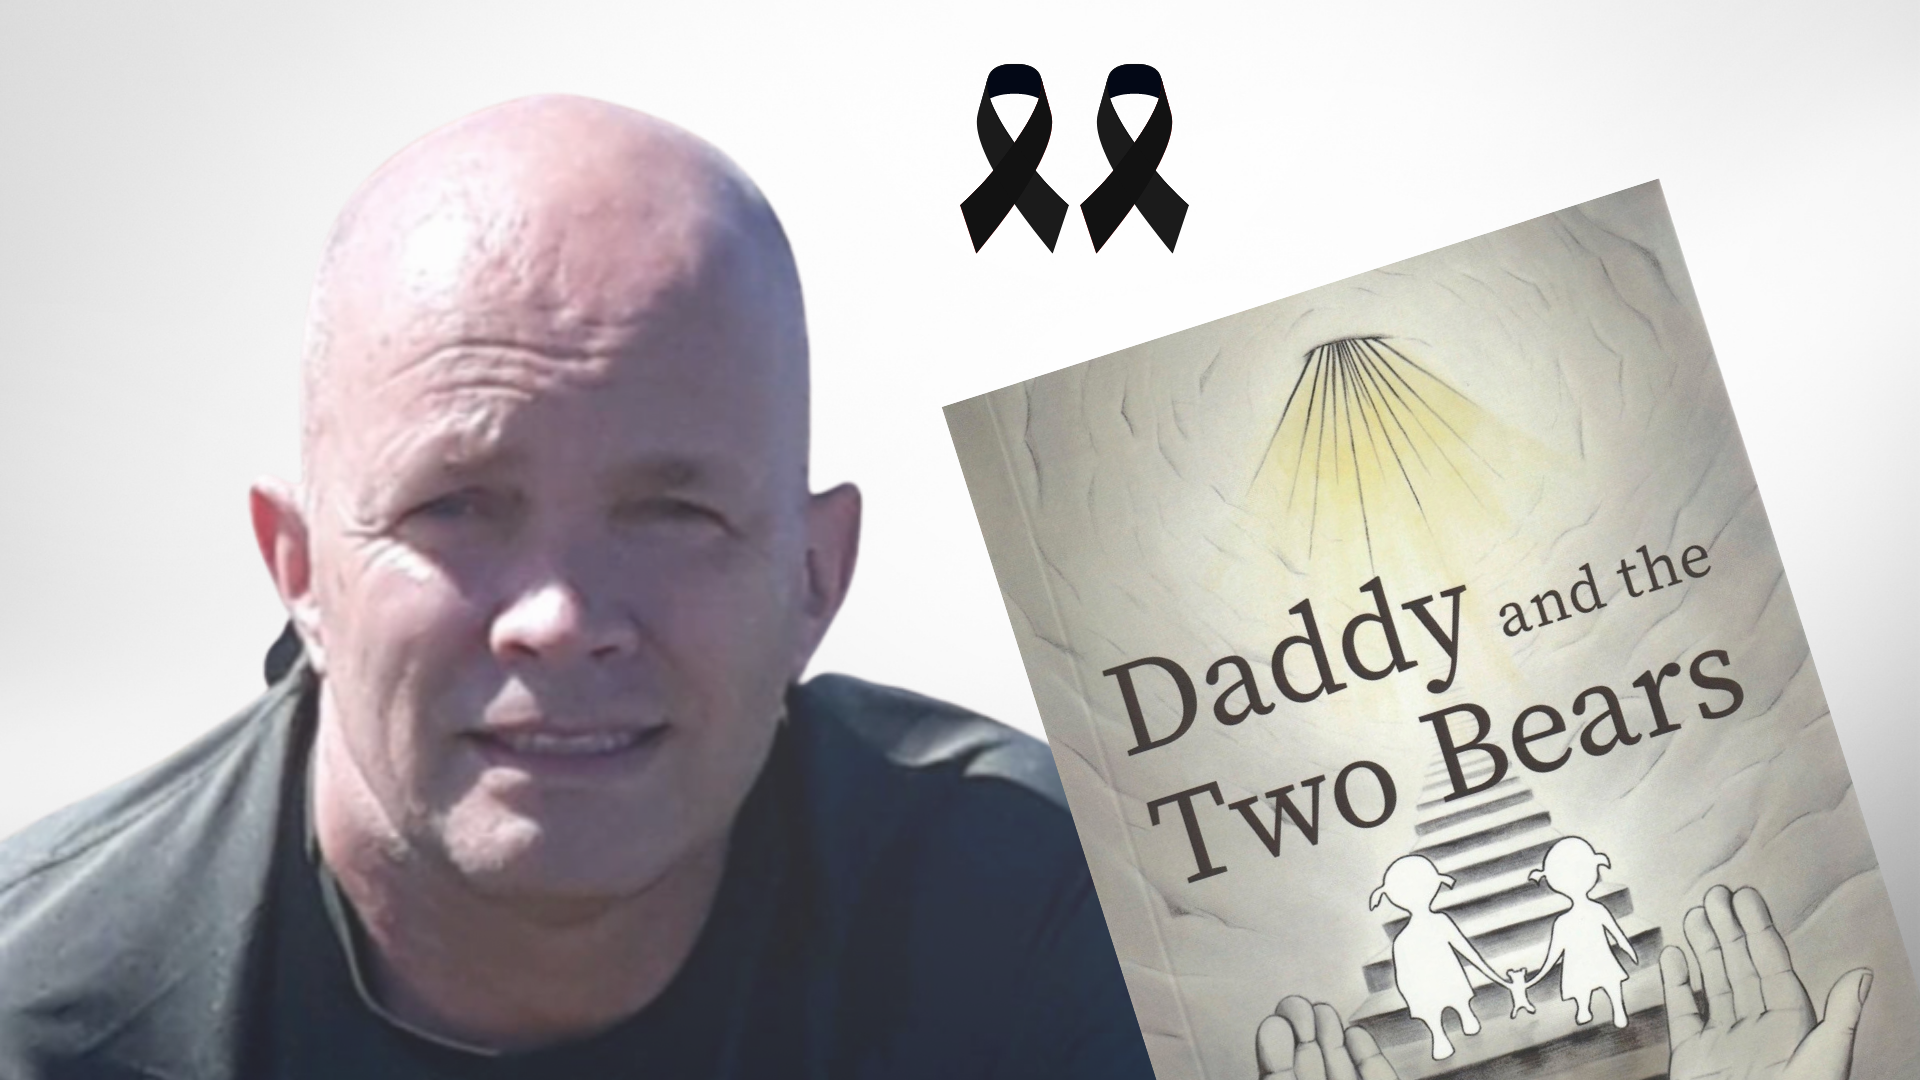 A Fathers Grief - The Impact of Baby Loss